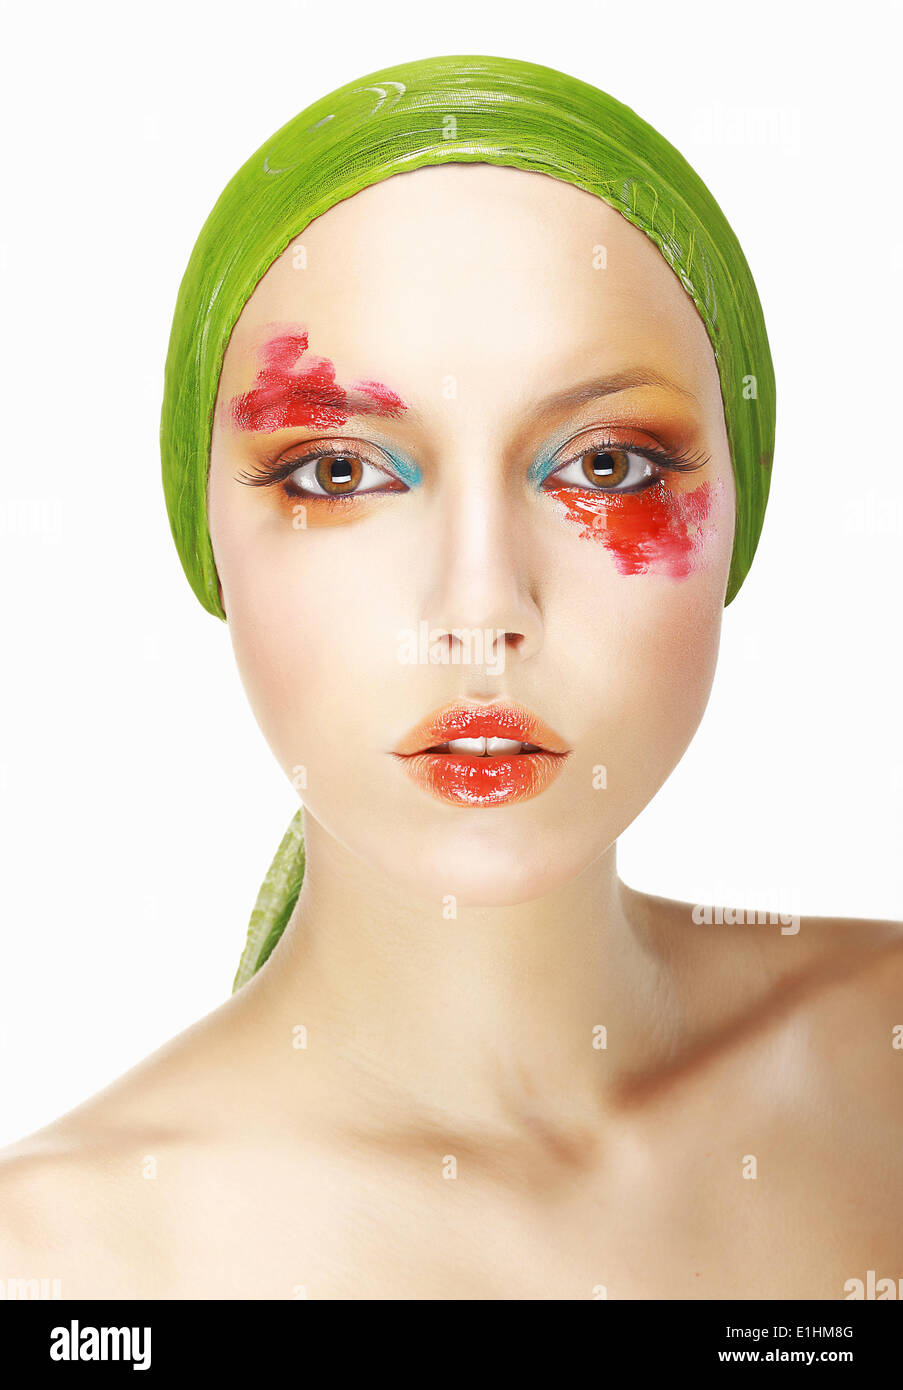 Quaintness & Eccentricity. Styled Woman Face with Theatrical Makeup - Stock Image